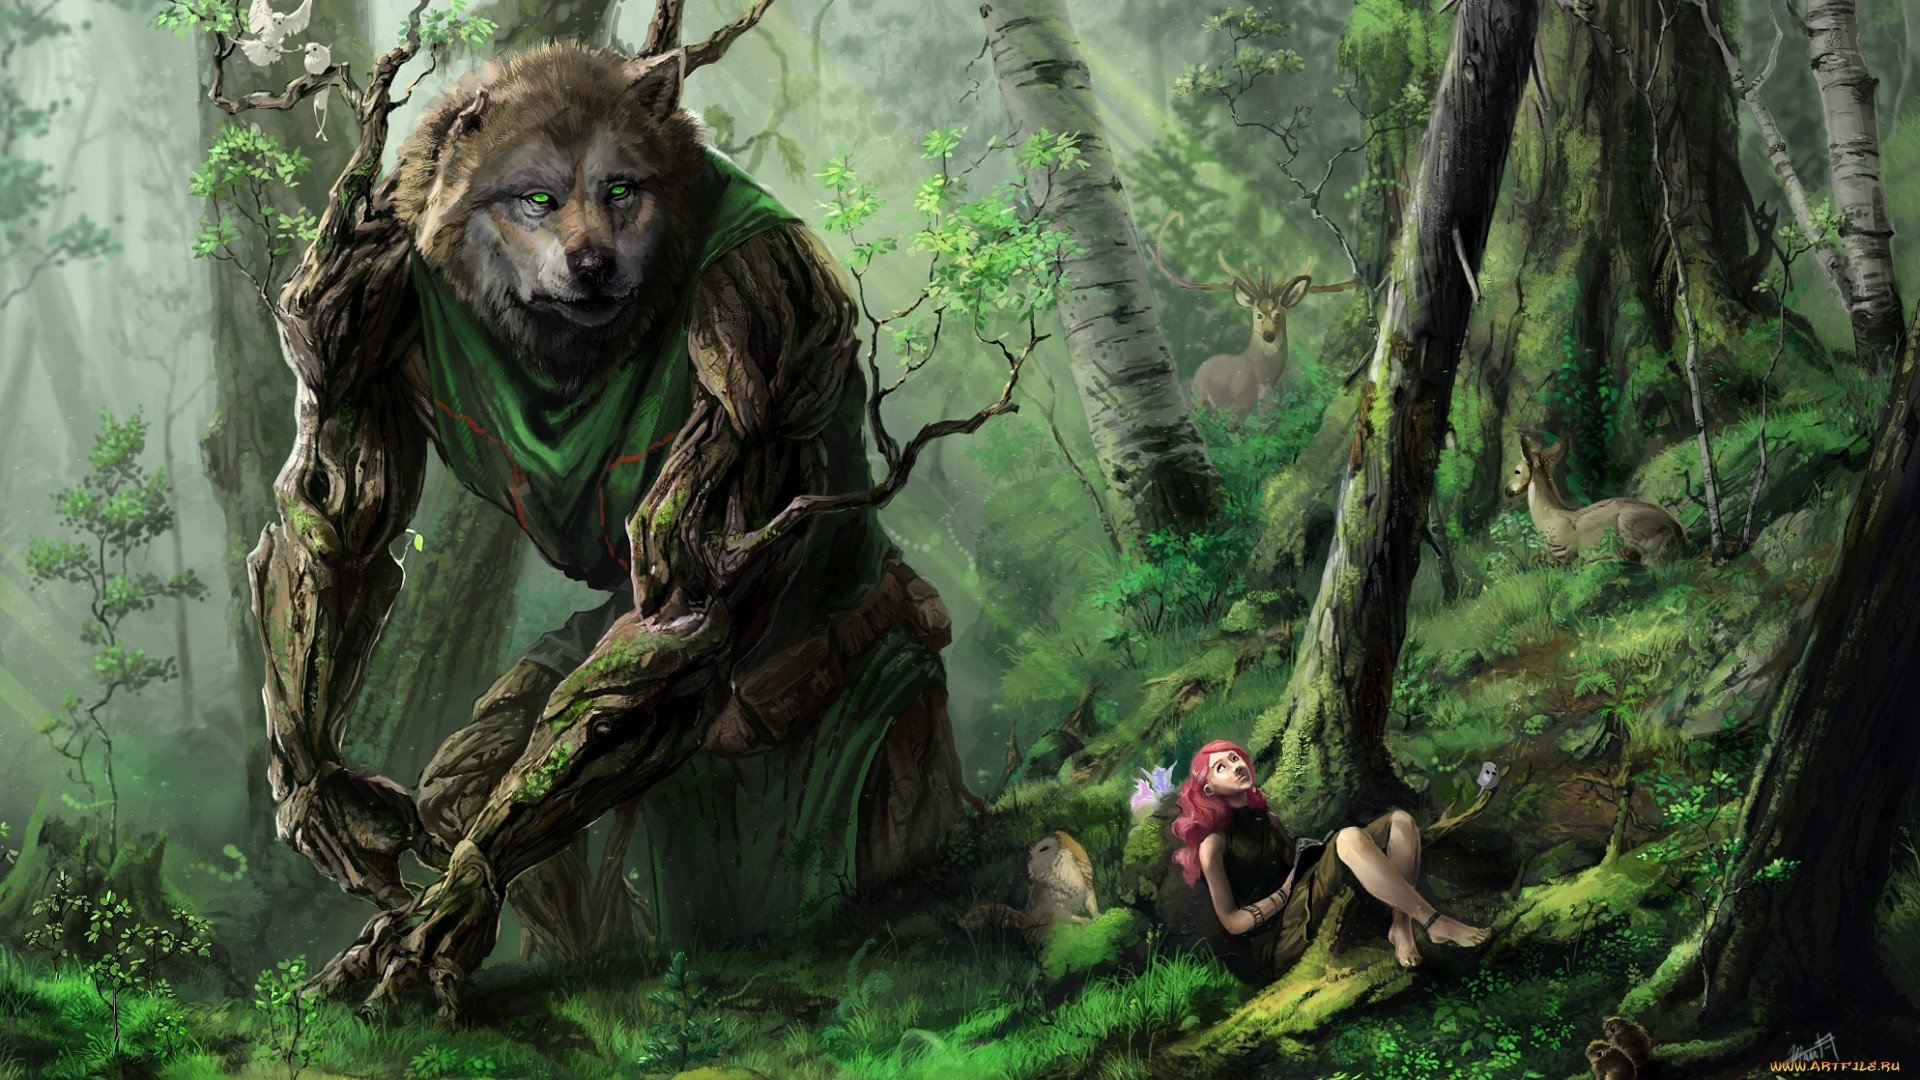 Fantasy - Creature  Artistic Wolf Giant Forest Girl Deer Wallpaper